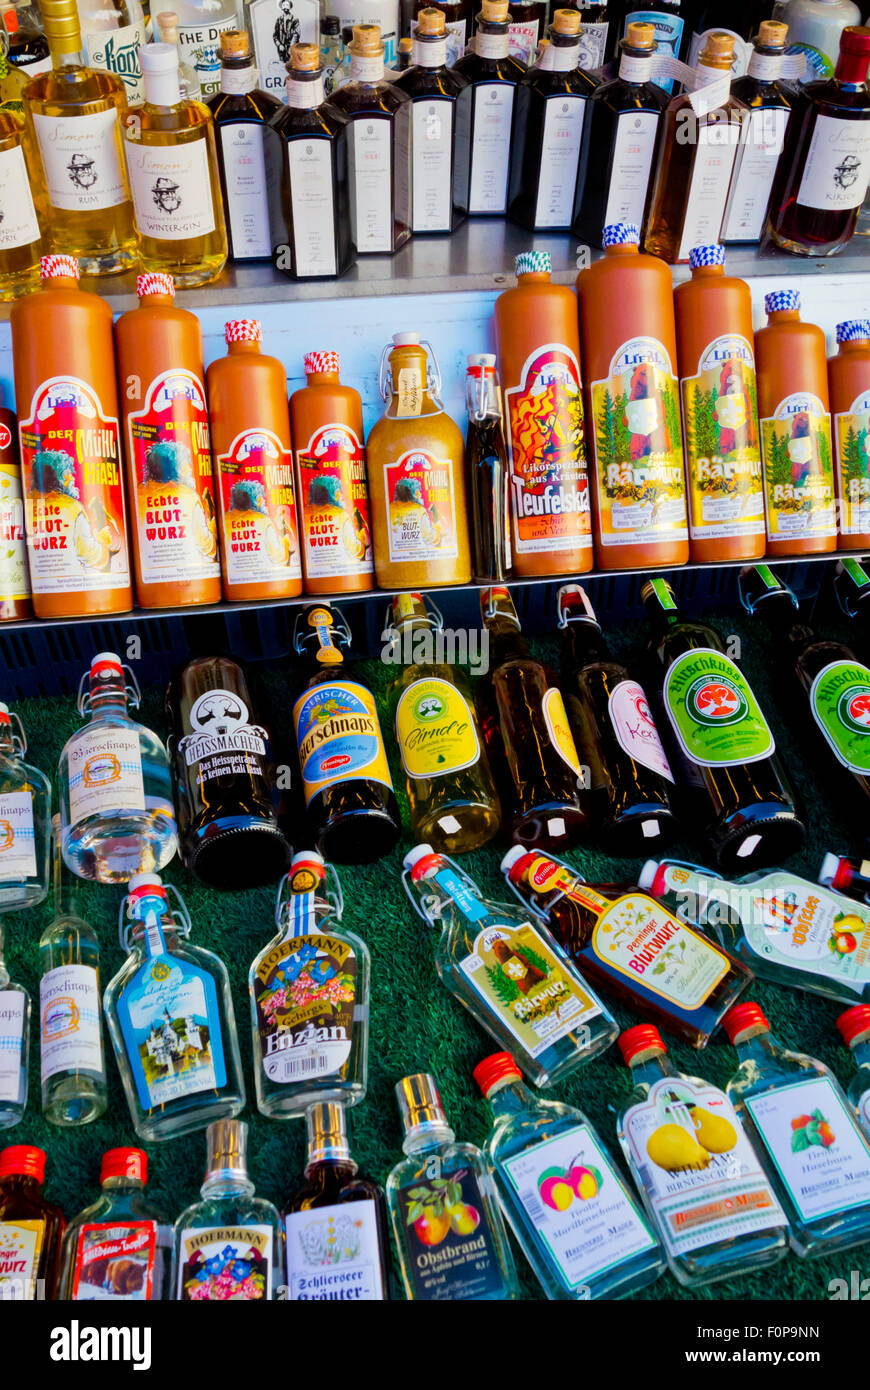 Spirits, hard liquor, Viktualienmarkt, main market, Altstadt, old town, Munich, Bavaria, Germany - Stock Image